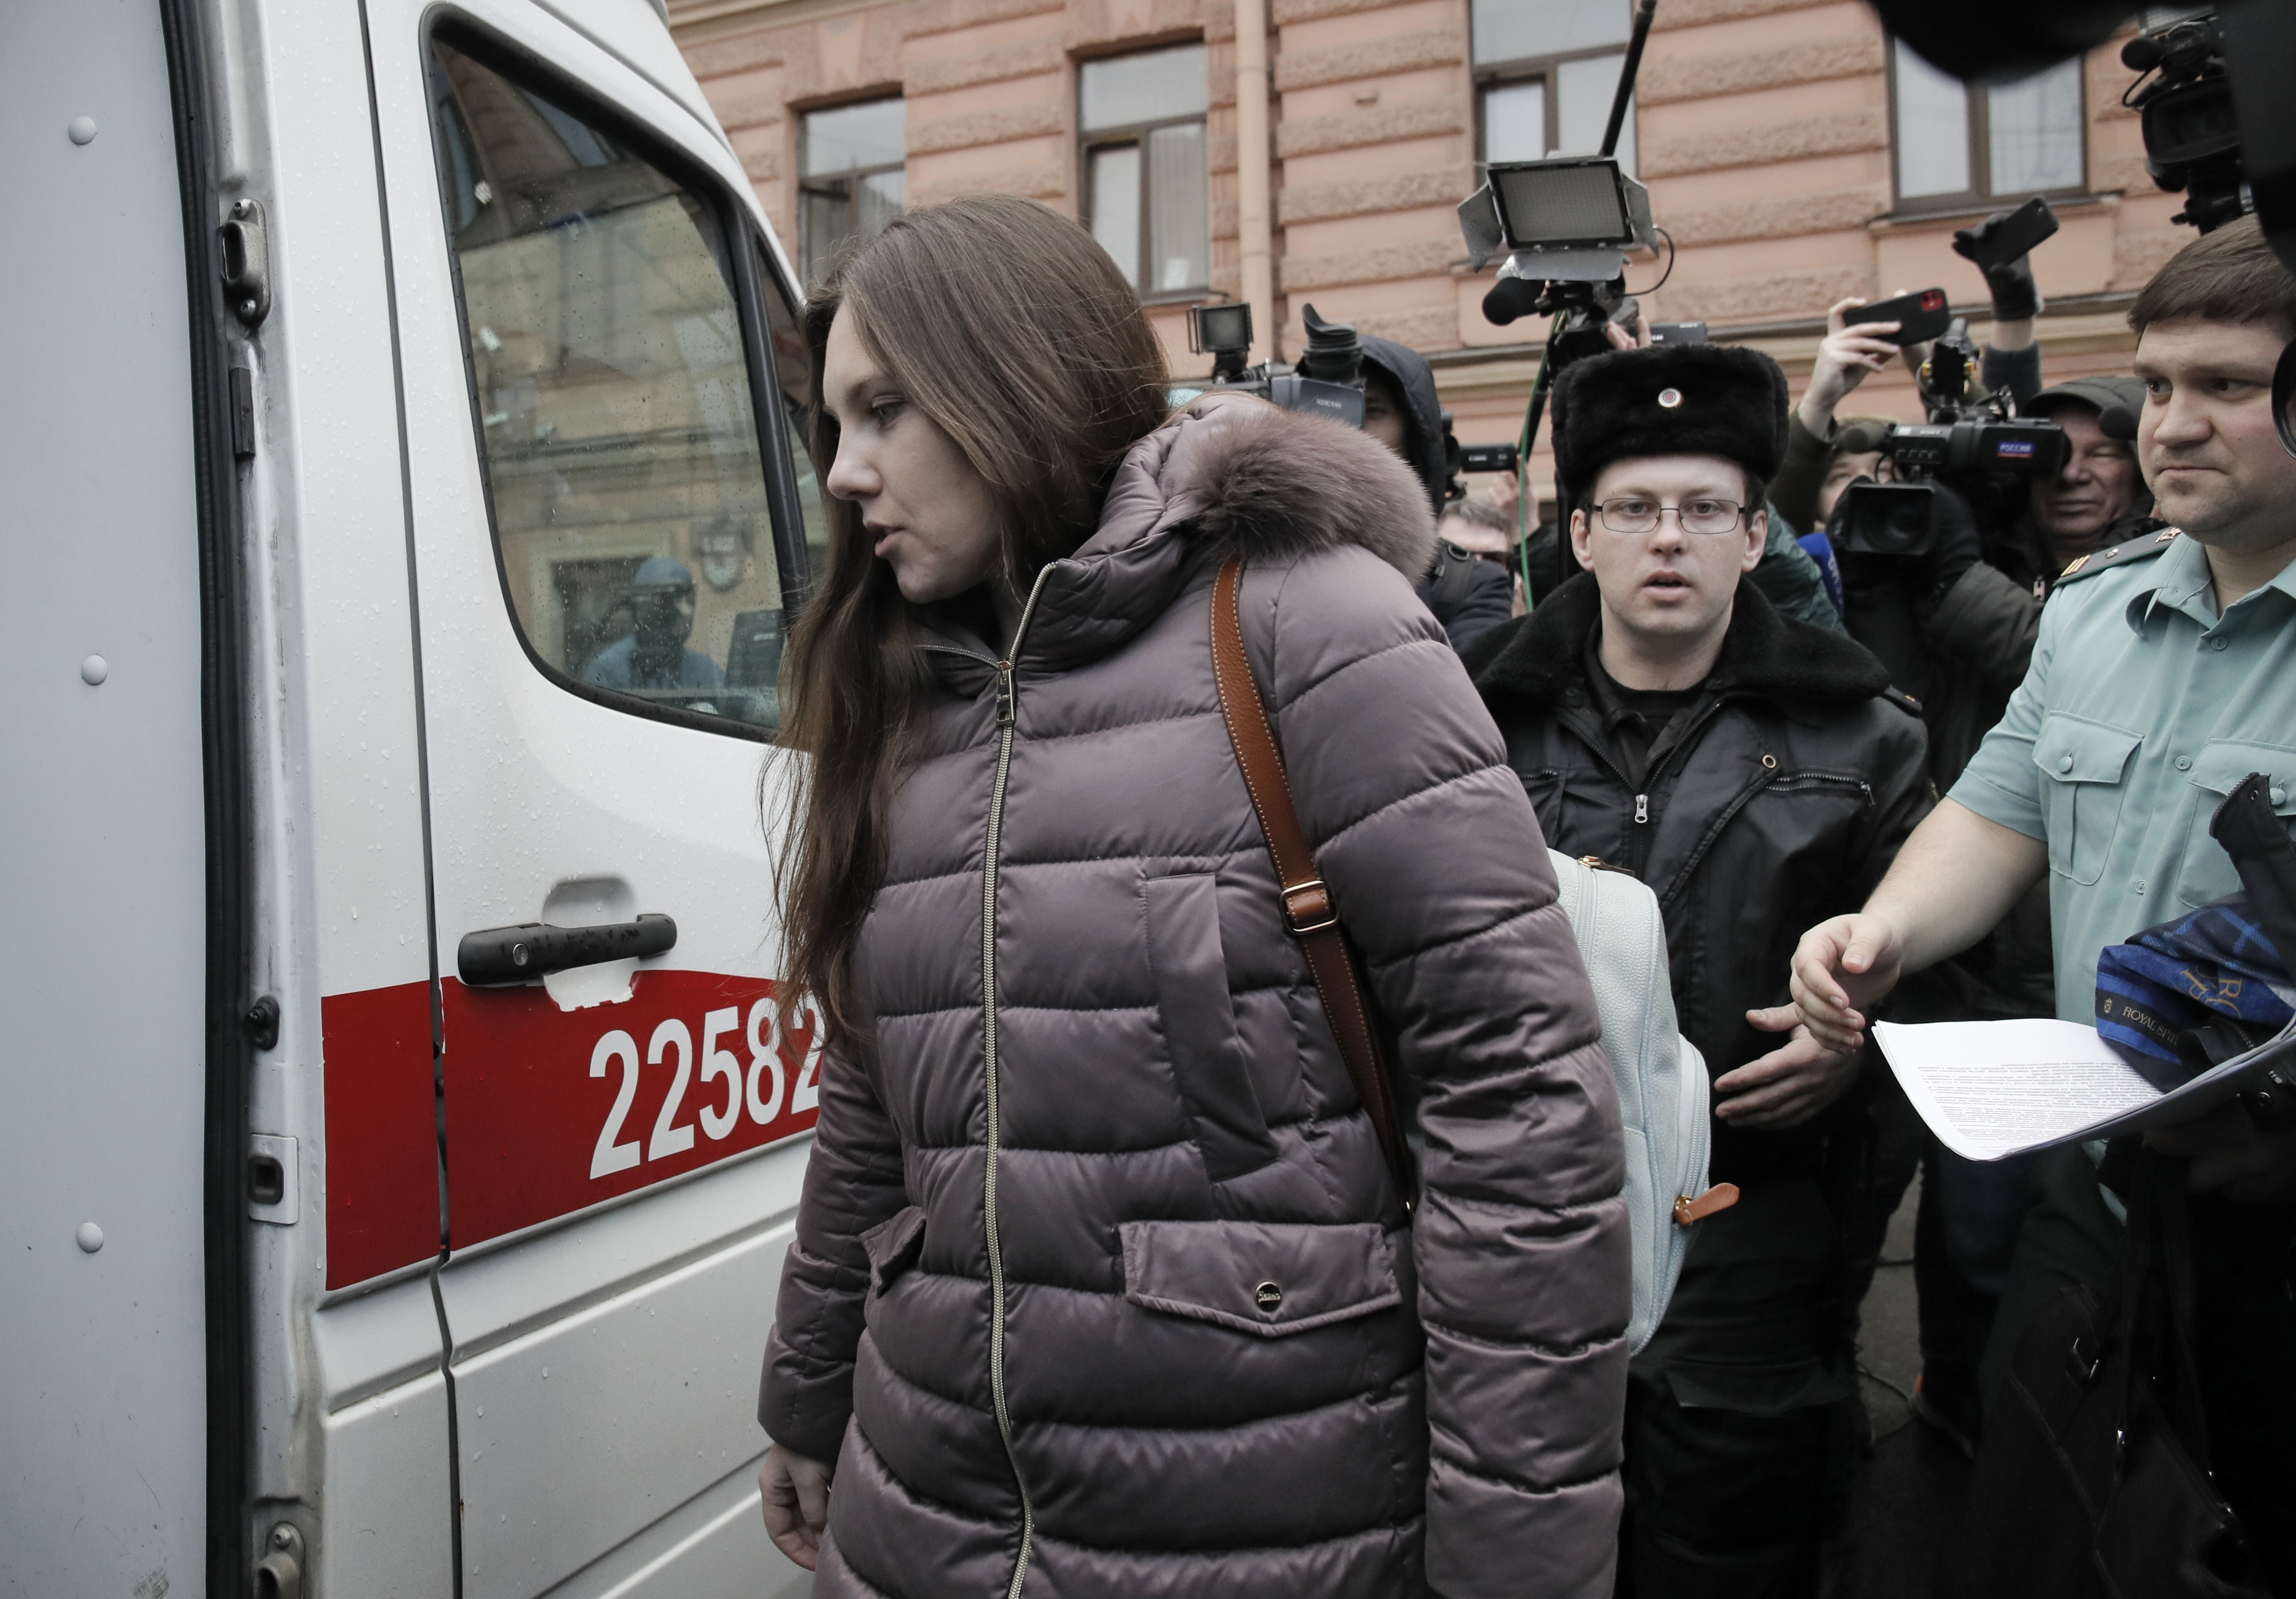 Alla Ilyina, who broke out of the hospital on Feb. 7 after learning that she would have to spend 14 days in isolation instead of the 24 hours doctors promised her, is escorted by a bailiffs form a court after a session in St. Petersburg, Russia, on Feb. 17, 2020.